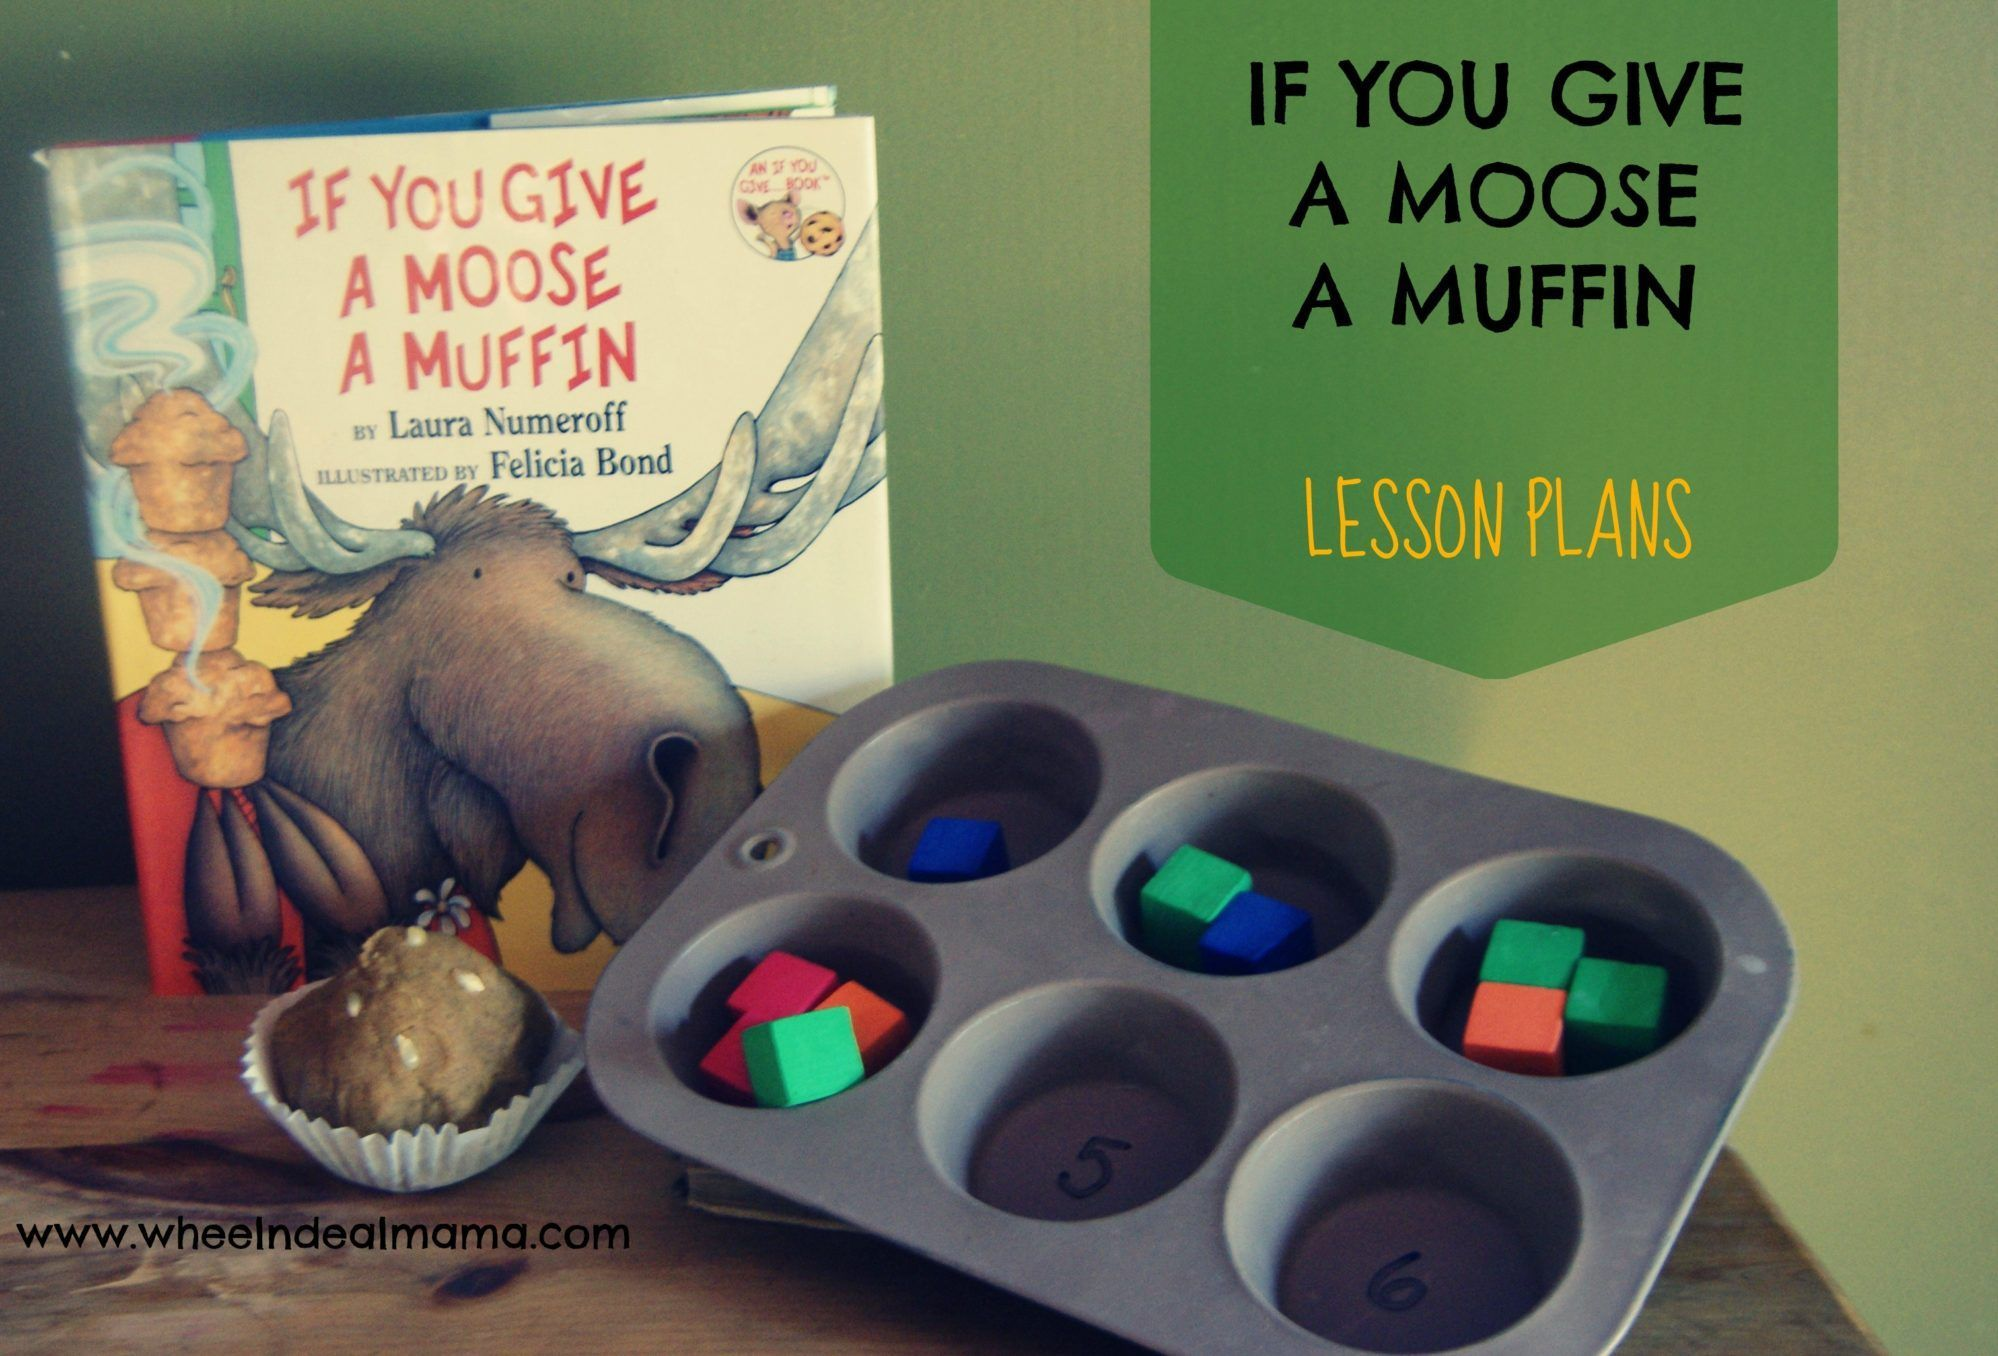 Looking for If you Give a Moose a Muffin Activities? Here is a great series of Lesson Plans for those of you that would like new and fun lessons for home! If You Give A Moose A Muffin A fun book about a moose, who when given one thing he desires immediately has to have … #Deal #Give #home school preschool lesson plans activities #Lesson #mama #Moose #Muffin #Plans #Wheel